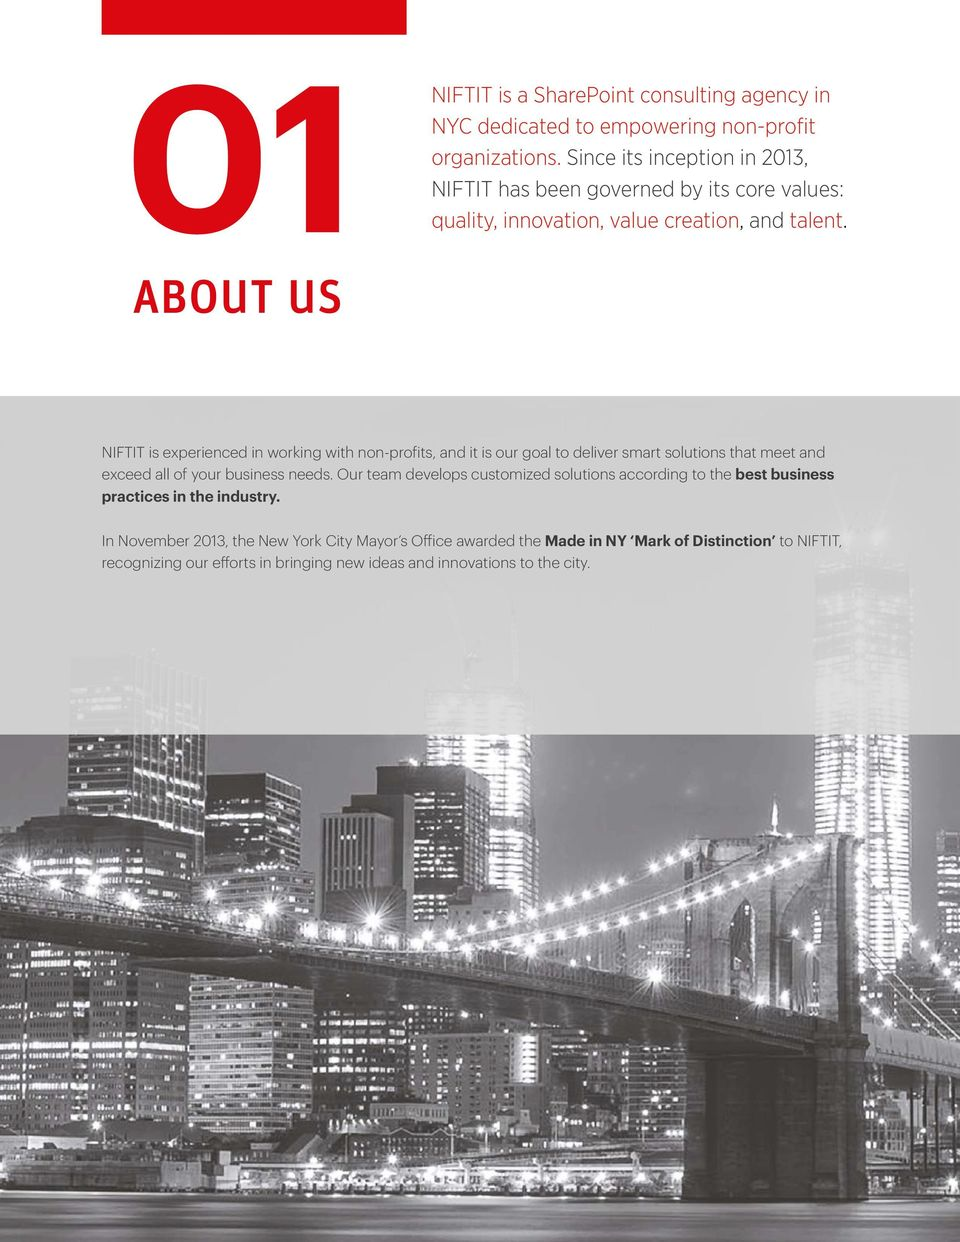 NIFTIT is experienced in working with non-profits, and it is our goal to deliver smart solutions that meet and exceed all of your business needs.